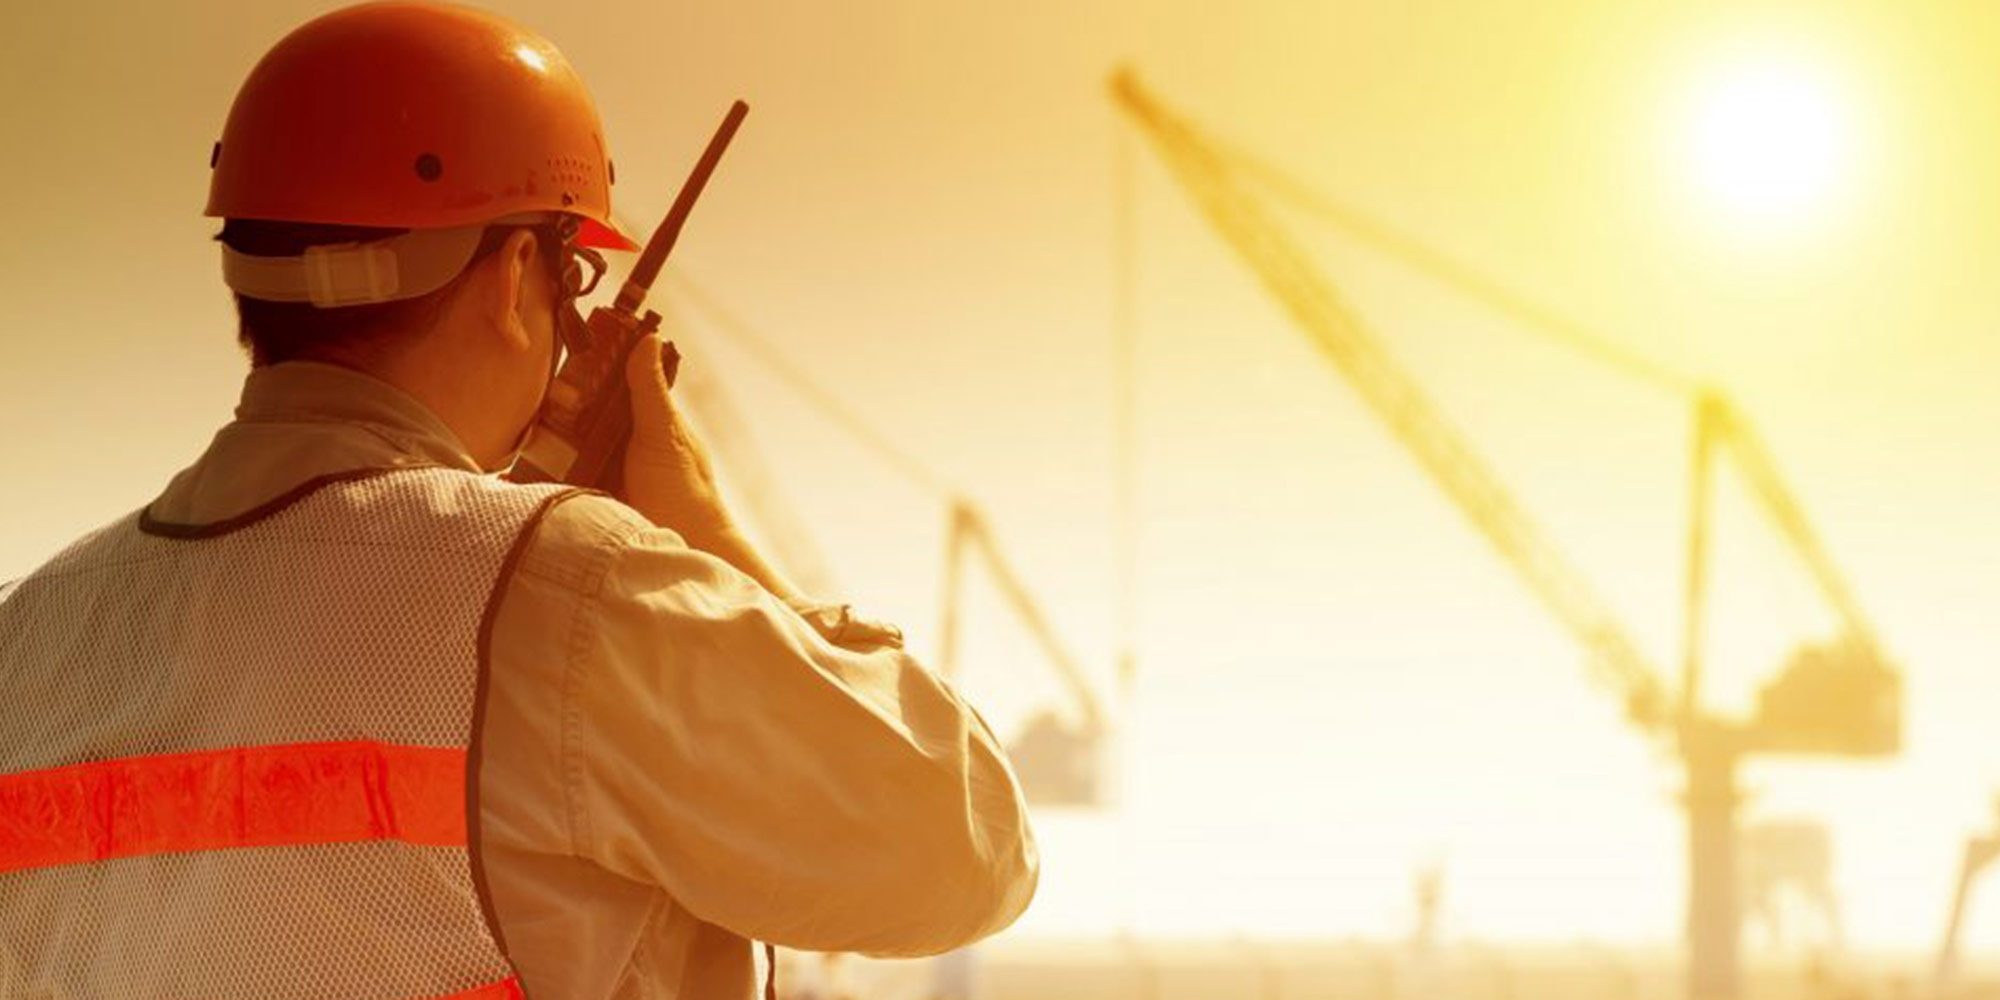 Construction worker monitors team for high-heat exposure